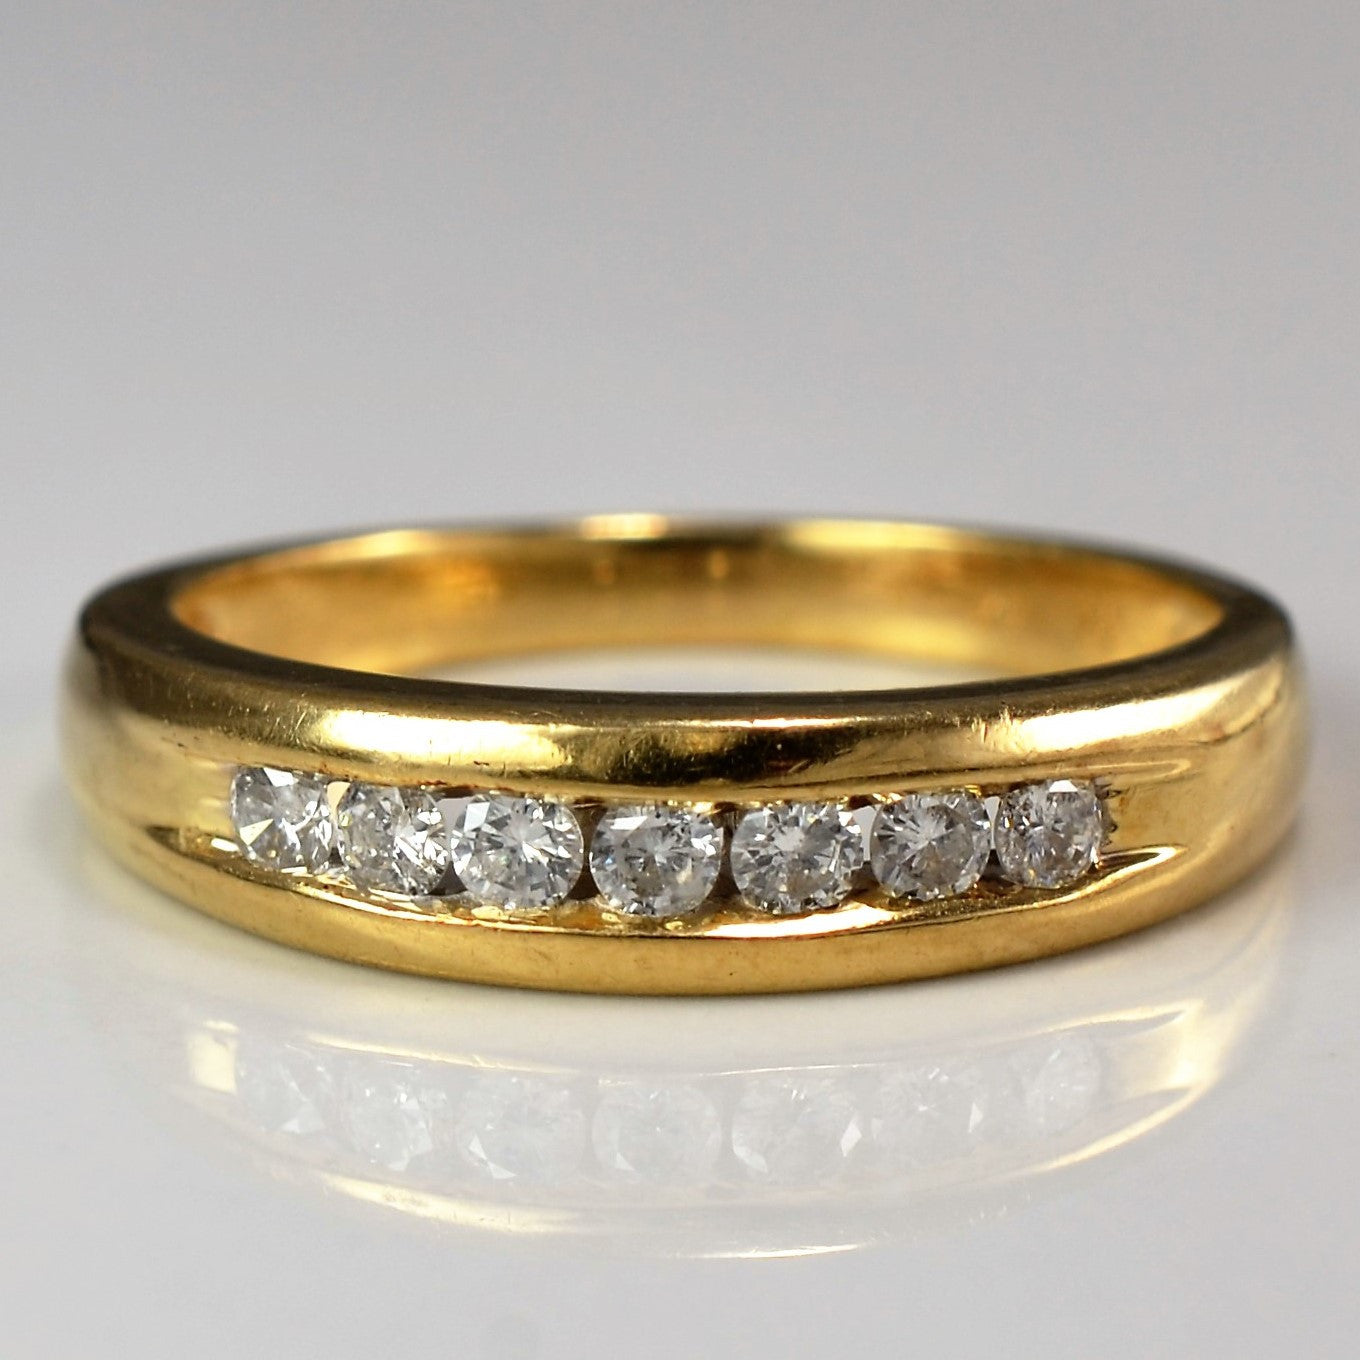 Channel Set Diamond Ring | 0.20 ctw, SZ 7.5 |